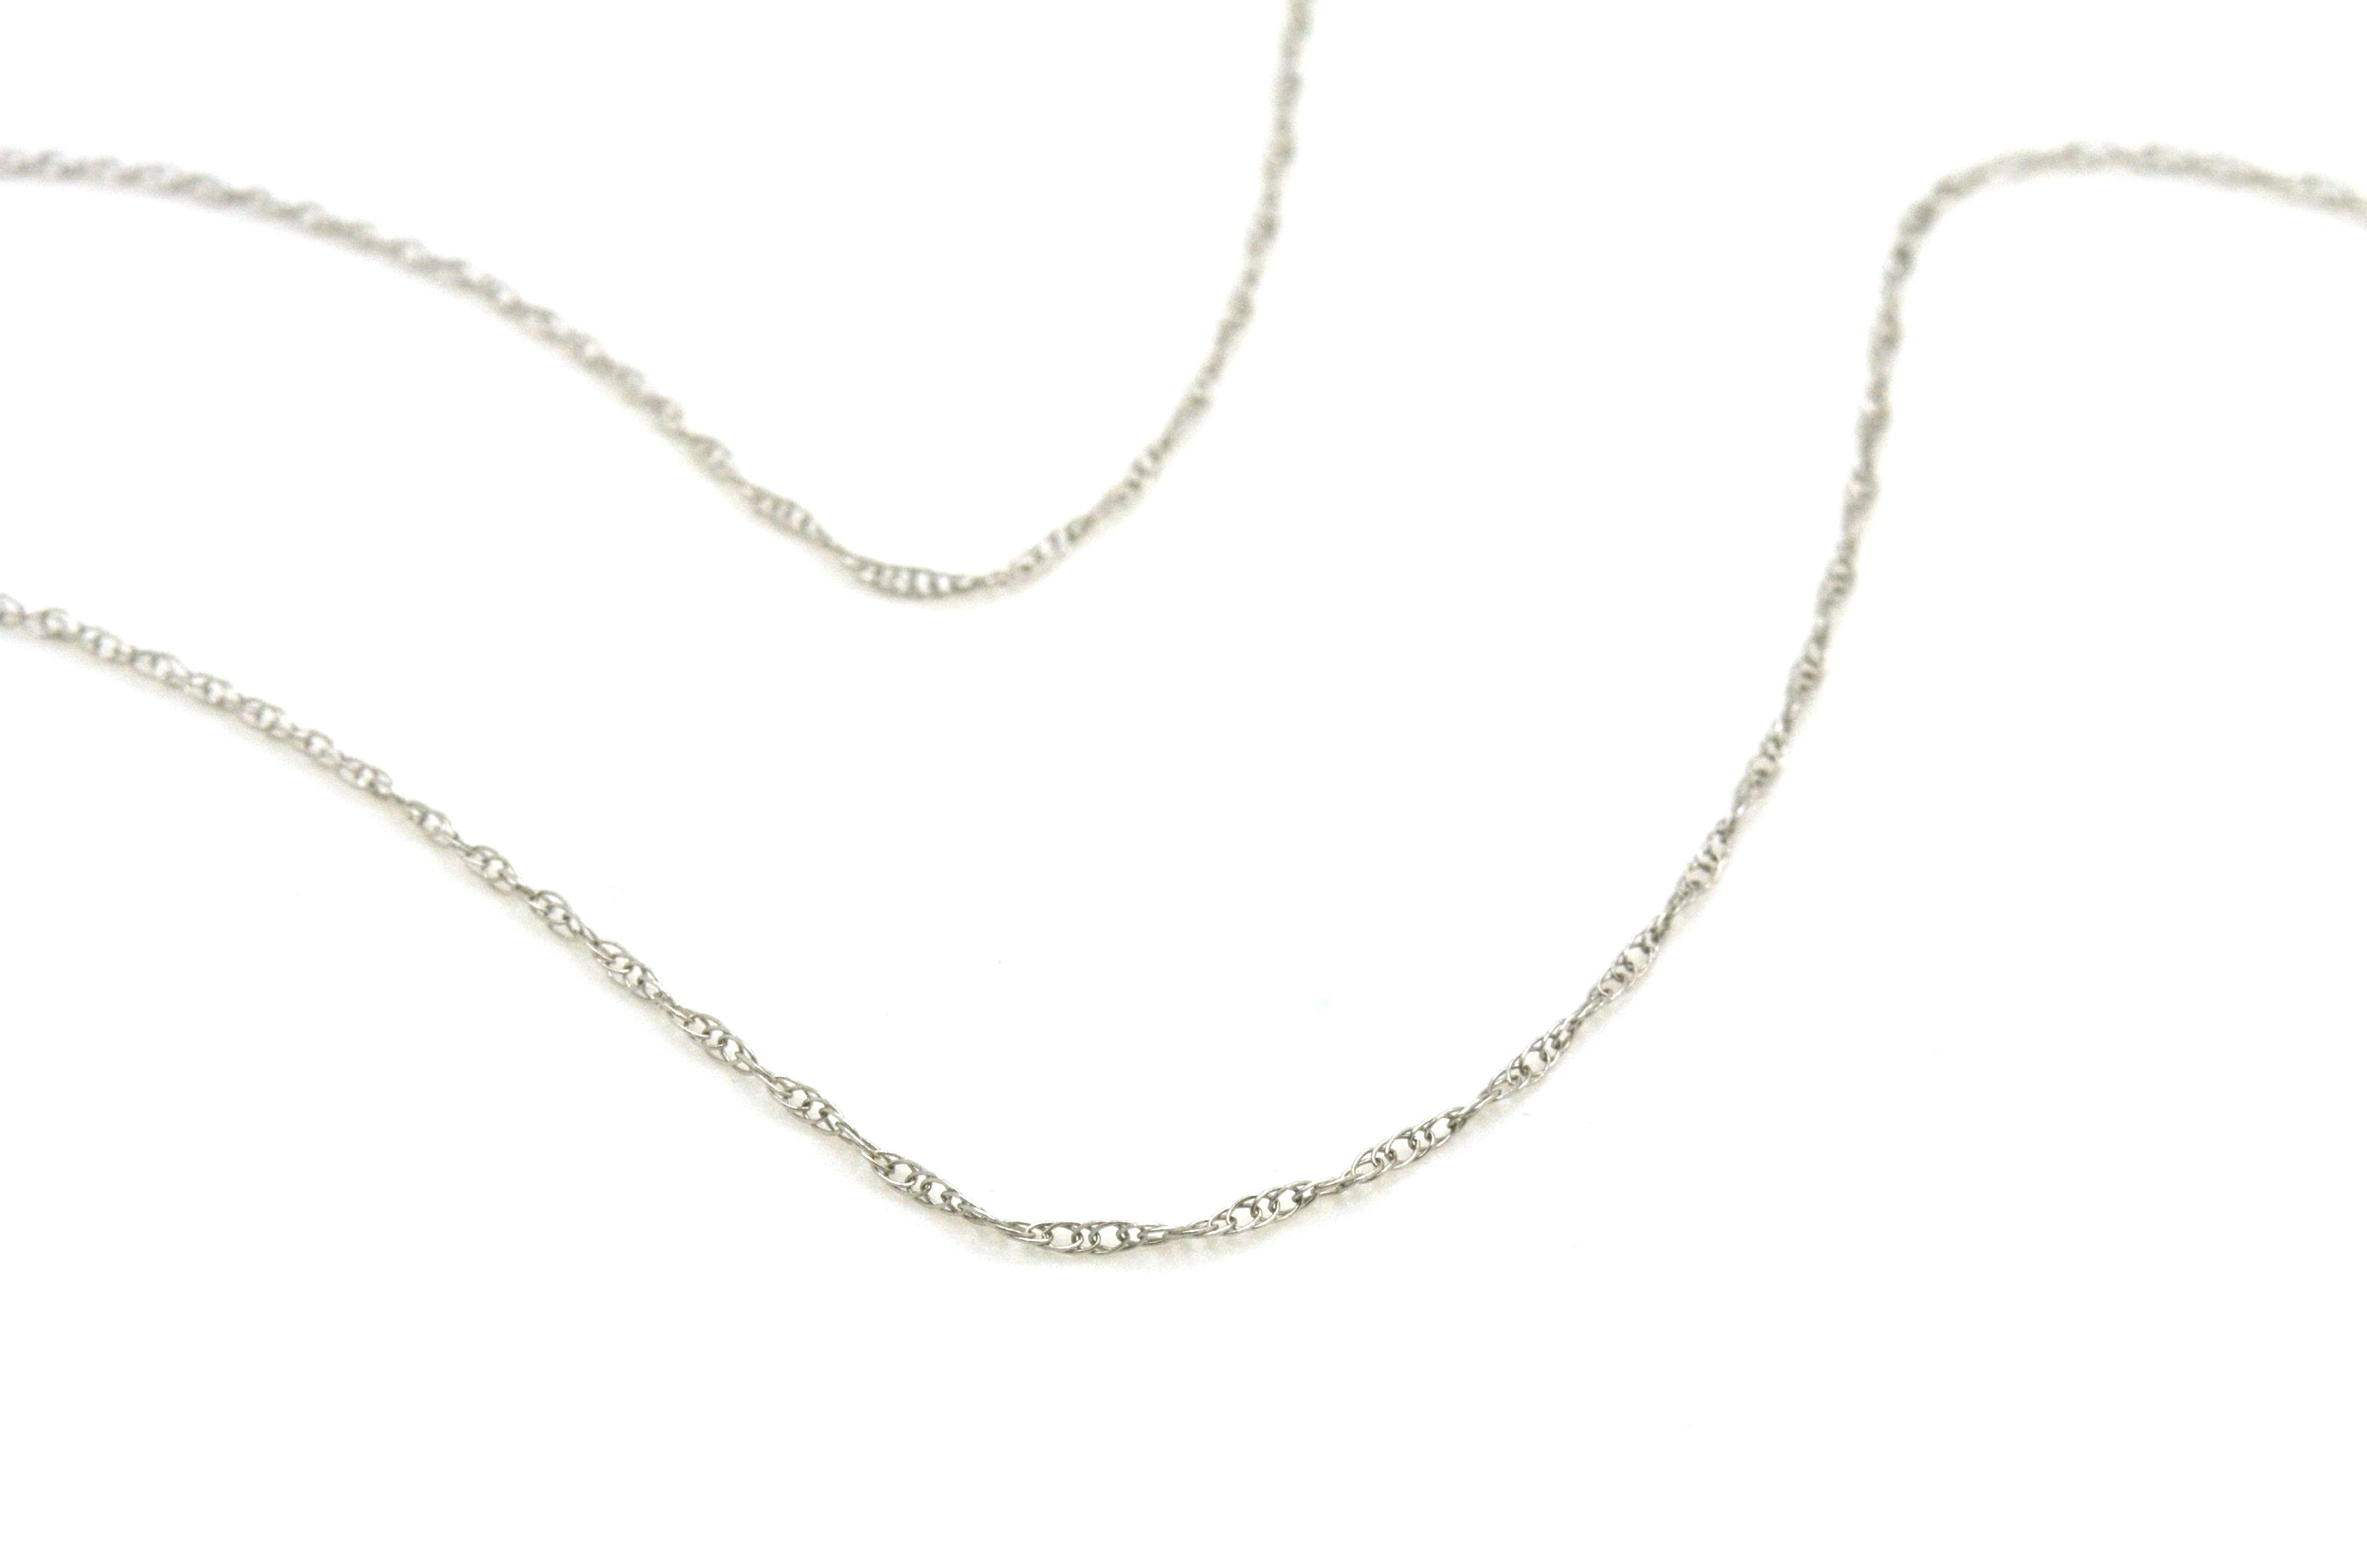 14k White Gold Seven Round Diamond Journey Necklace - .75 ct. total - 18 in.